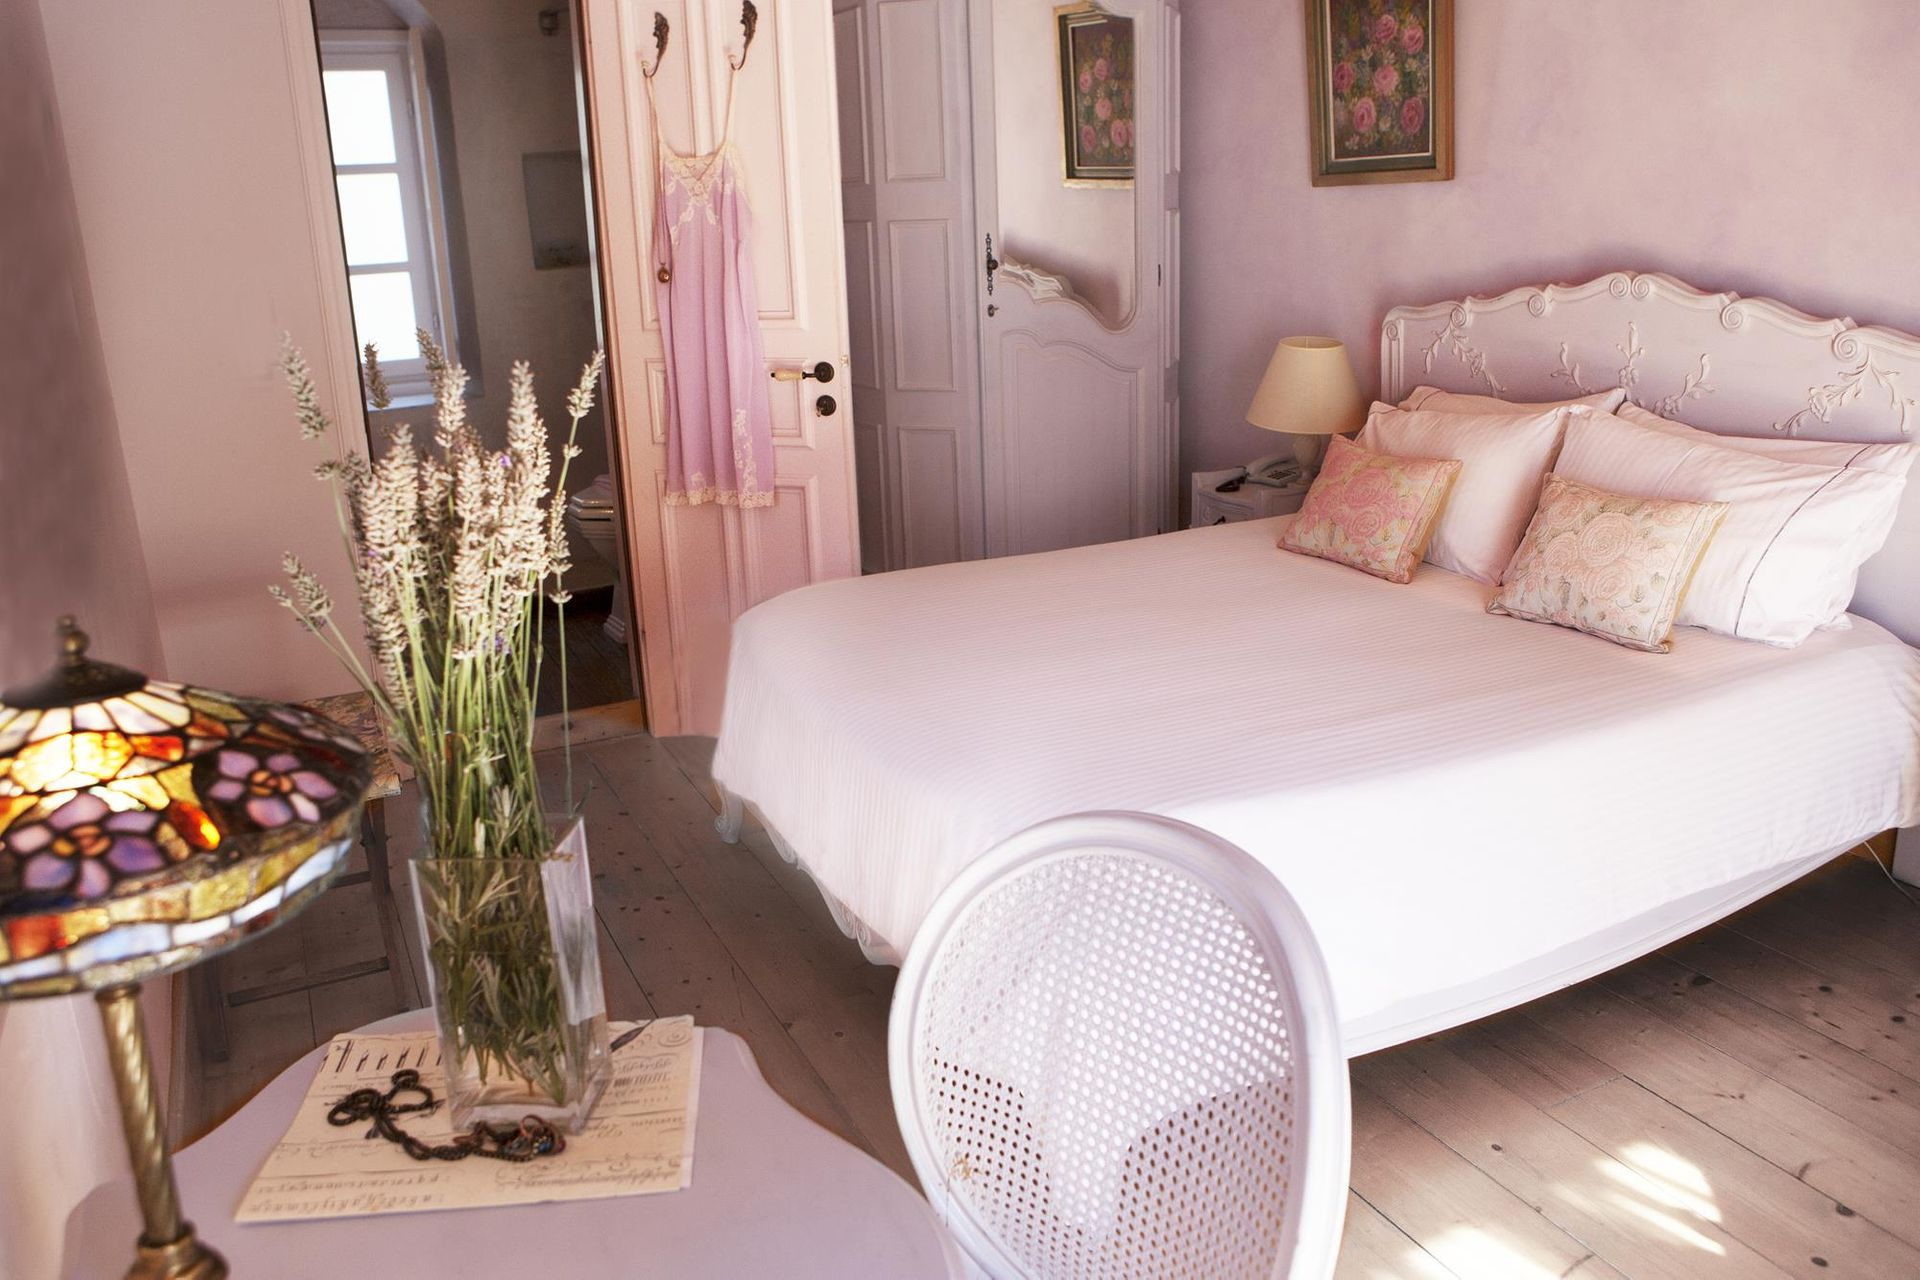 Amaryllis Boutique Guest House - Ζαγοροχώρια ✦ 2 Ημέρες (1 Διανυκτέρευση) ✦ 2 άτομα ✦ Χωρίς Πρωινό ✦ 01/10/2020 έως 27/04/2021 ✦ Υπέροχη Τοποθεσία!